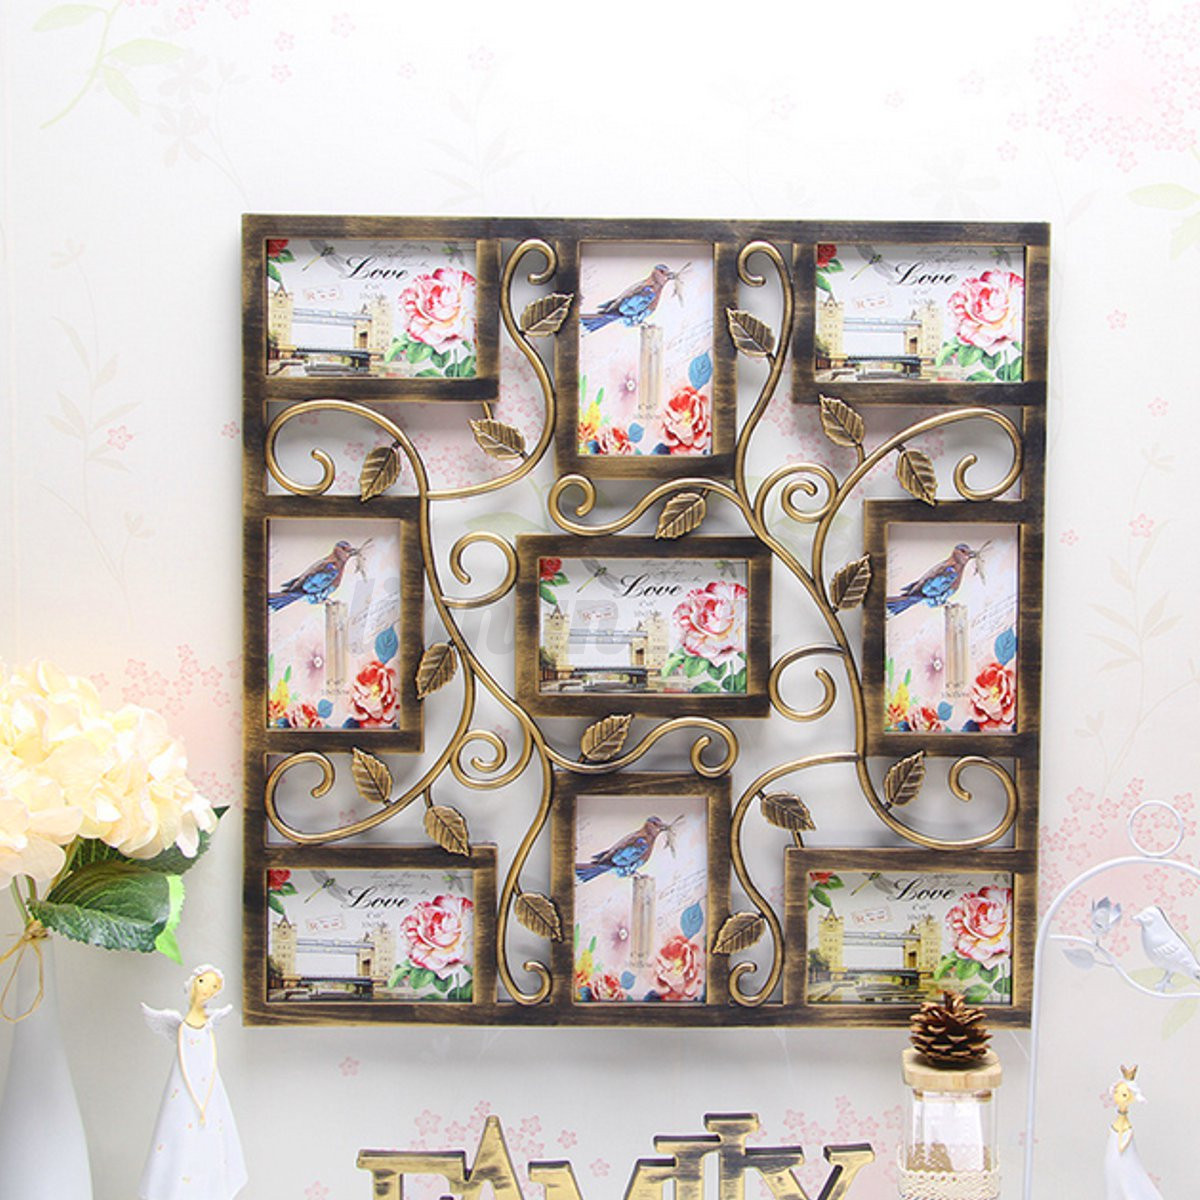 8 types 6 39 39 collage multi photo frames picture display for Wall hanging picture display